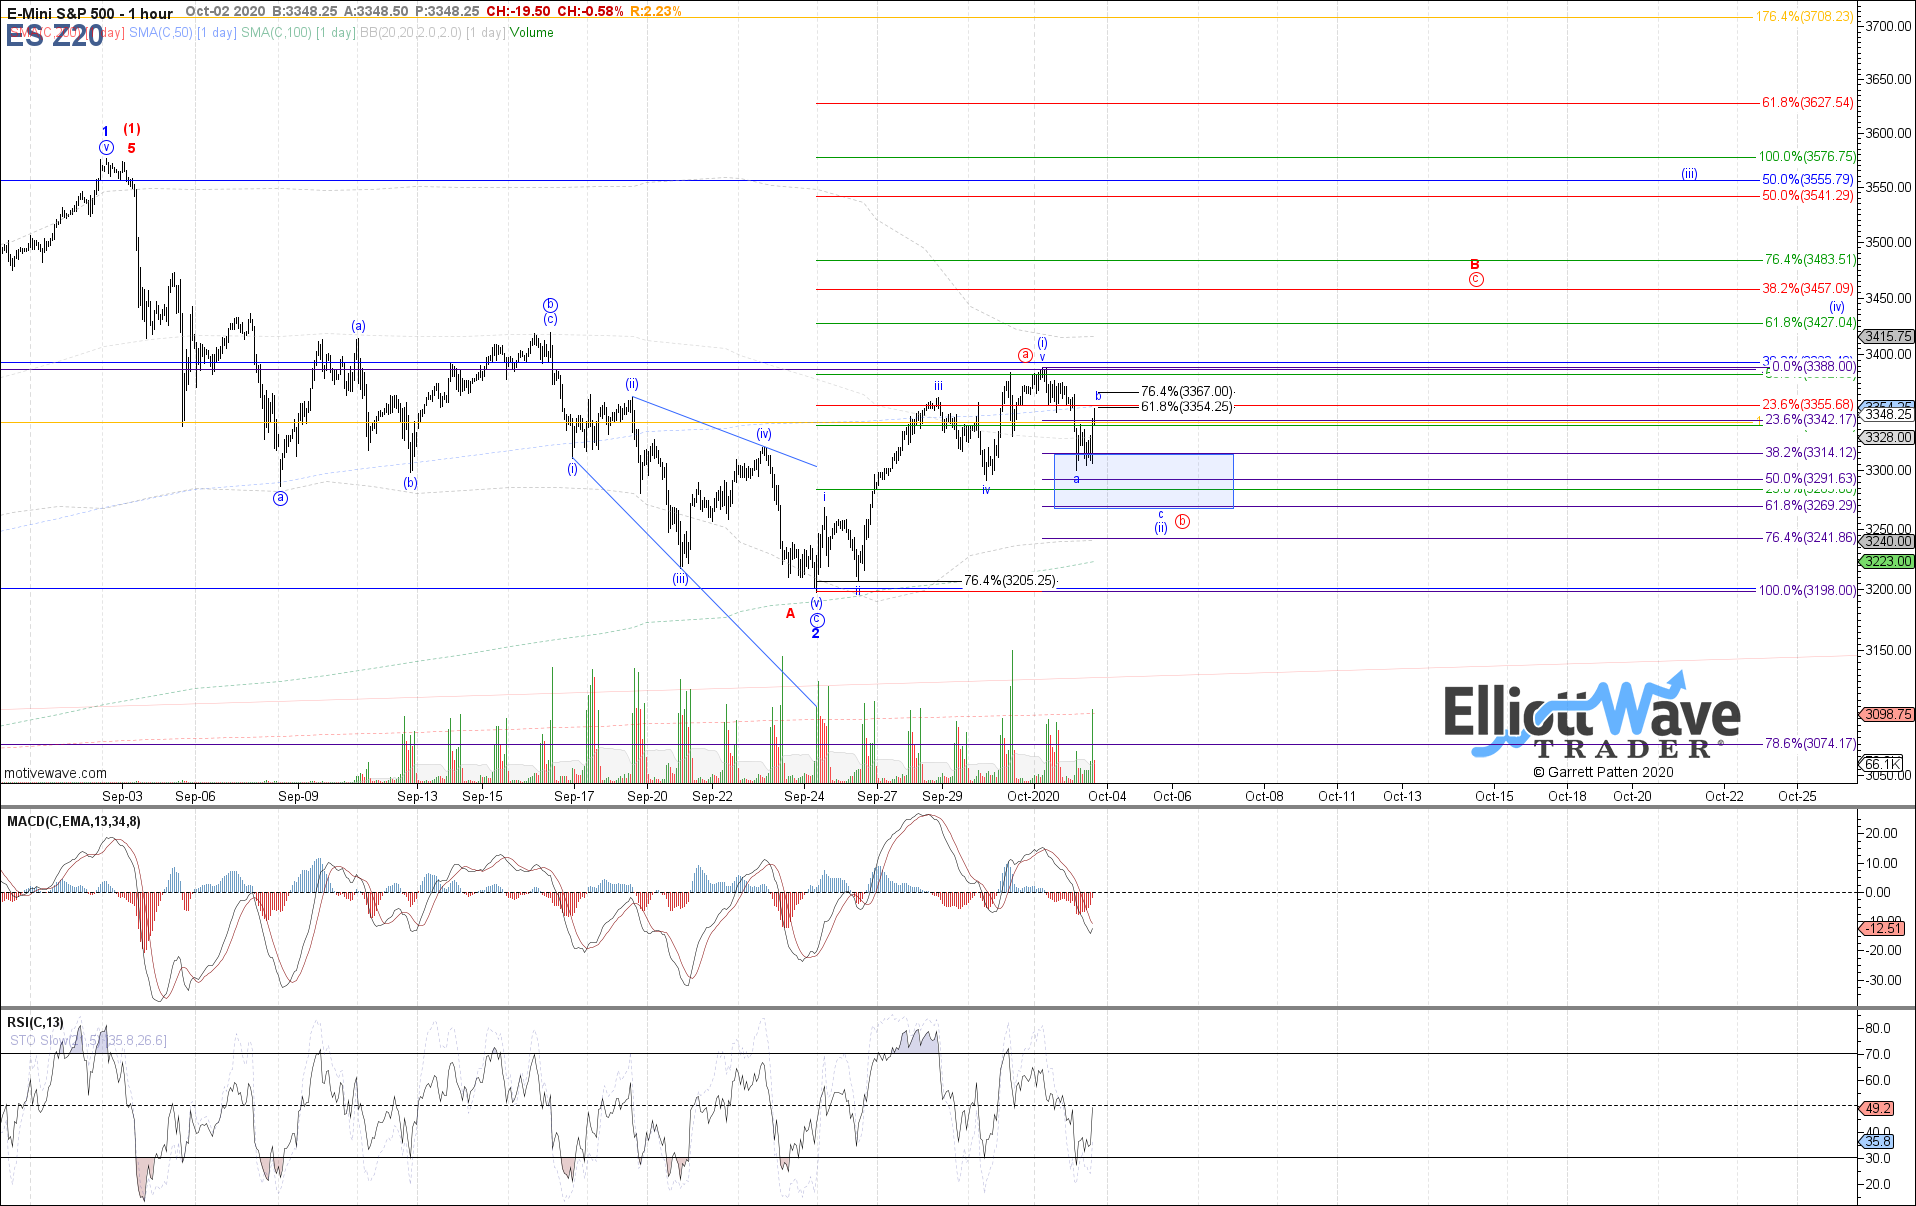 ES Z20 - Primary Analysis - Oct-02 0715 AM (1 hour)